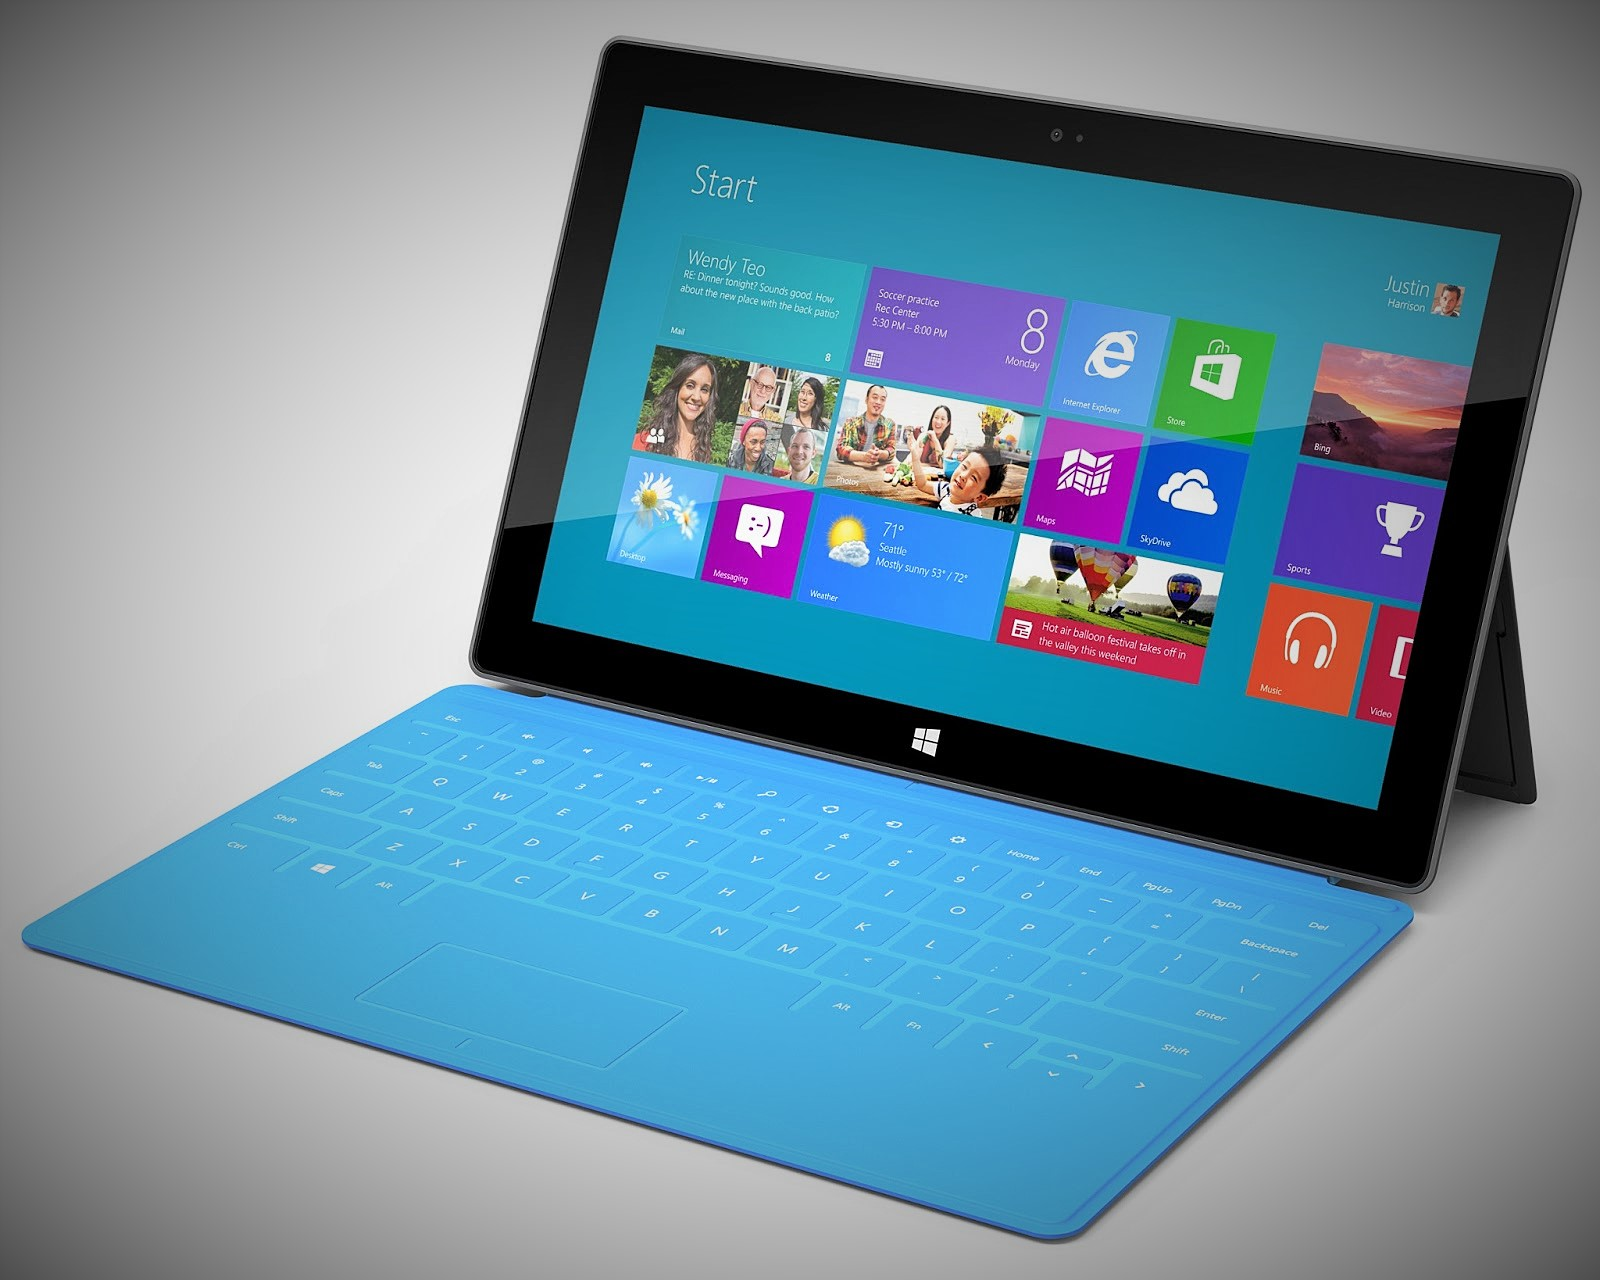 Microsoft to Make Office Free for Small Devices